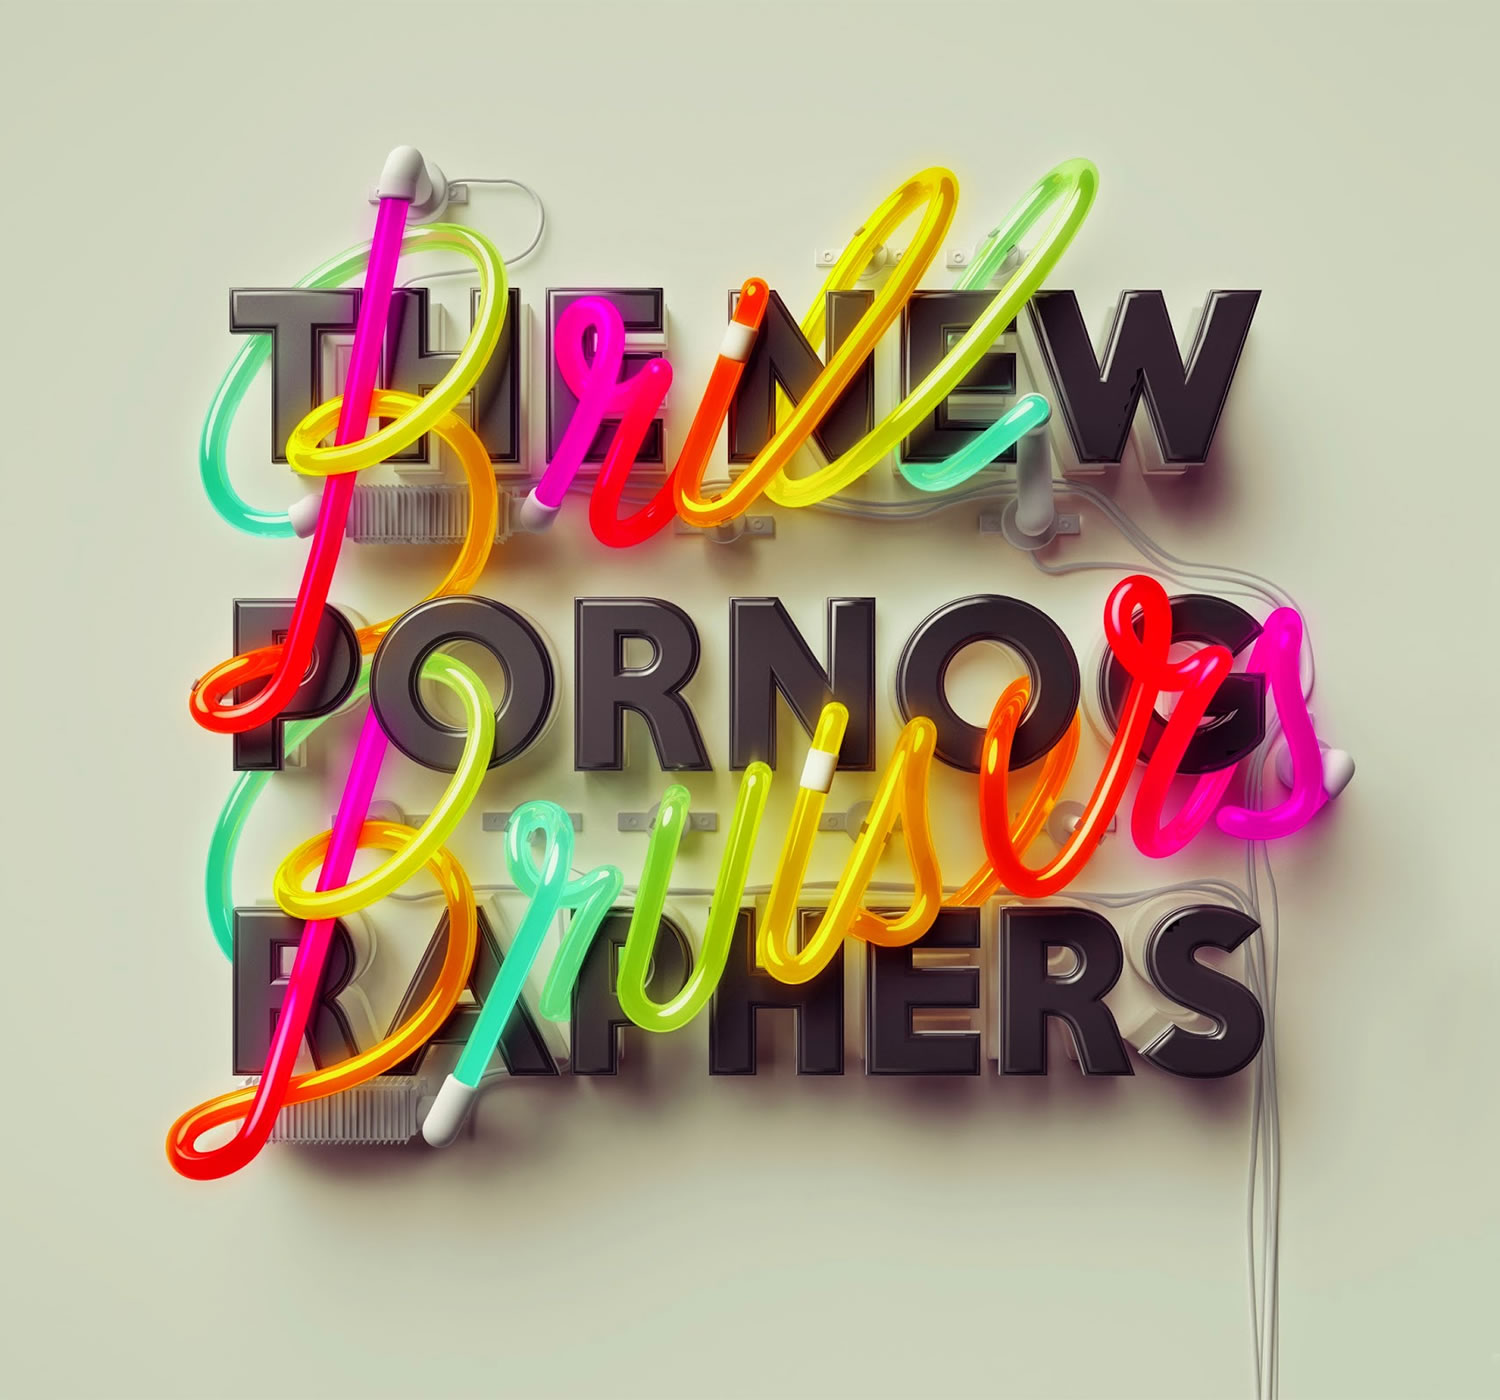 """The New Pornographers"" by Steven Wilson."